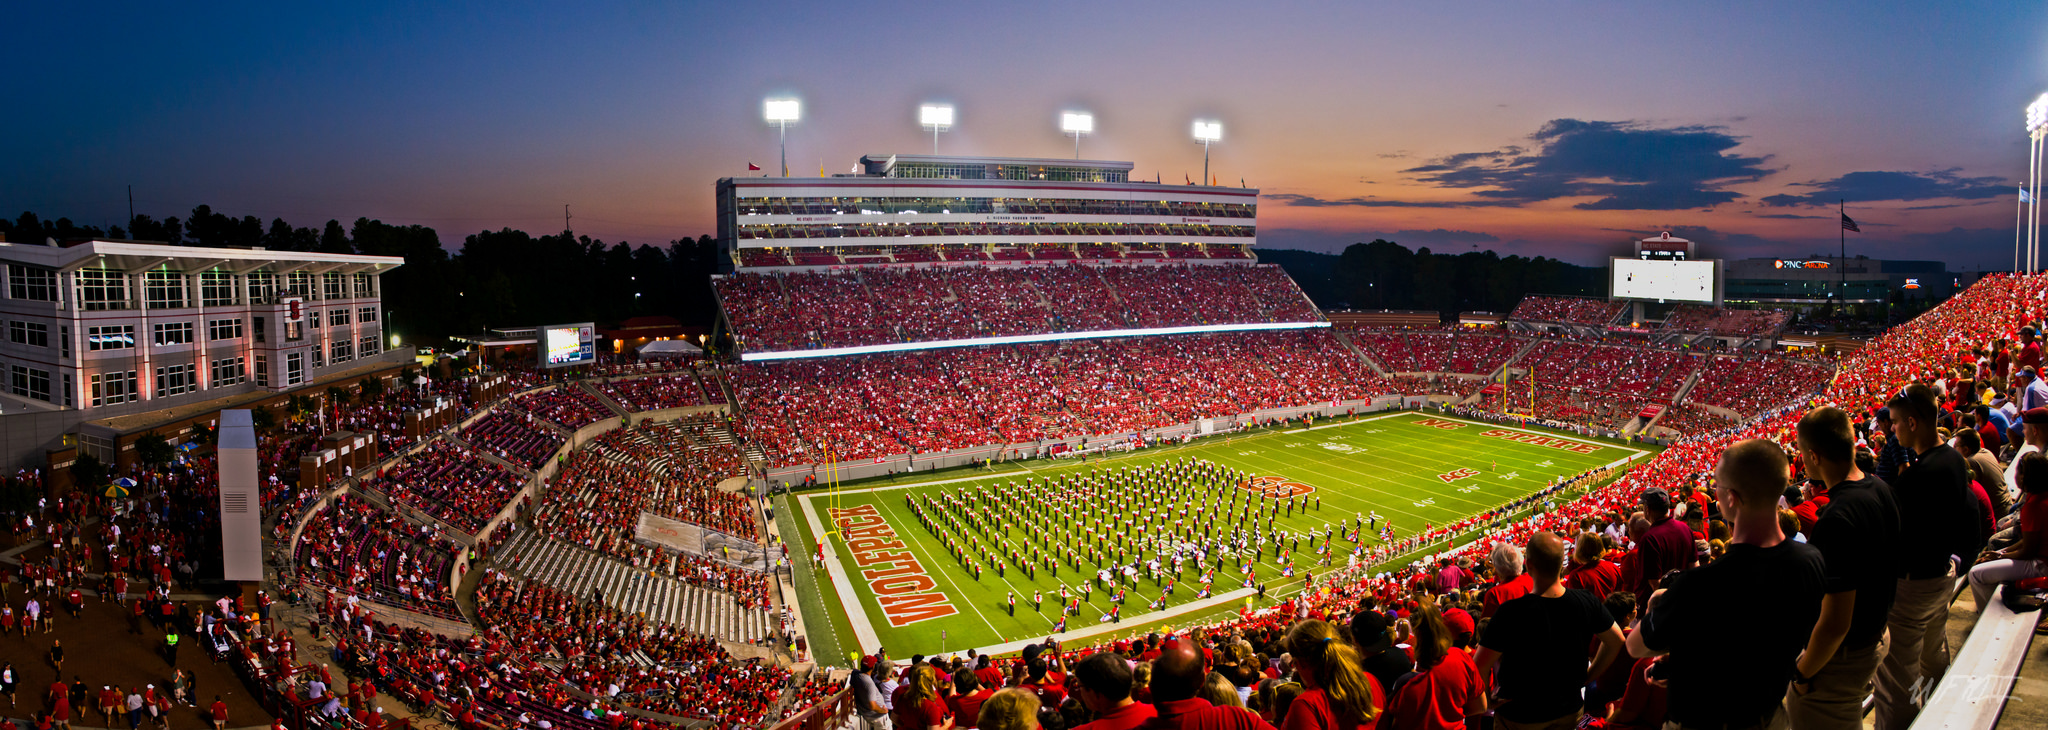 Carter Finley Stadium, home of the NC State Wolfpack